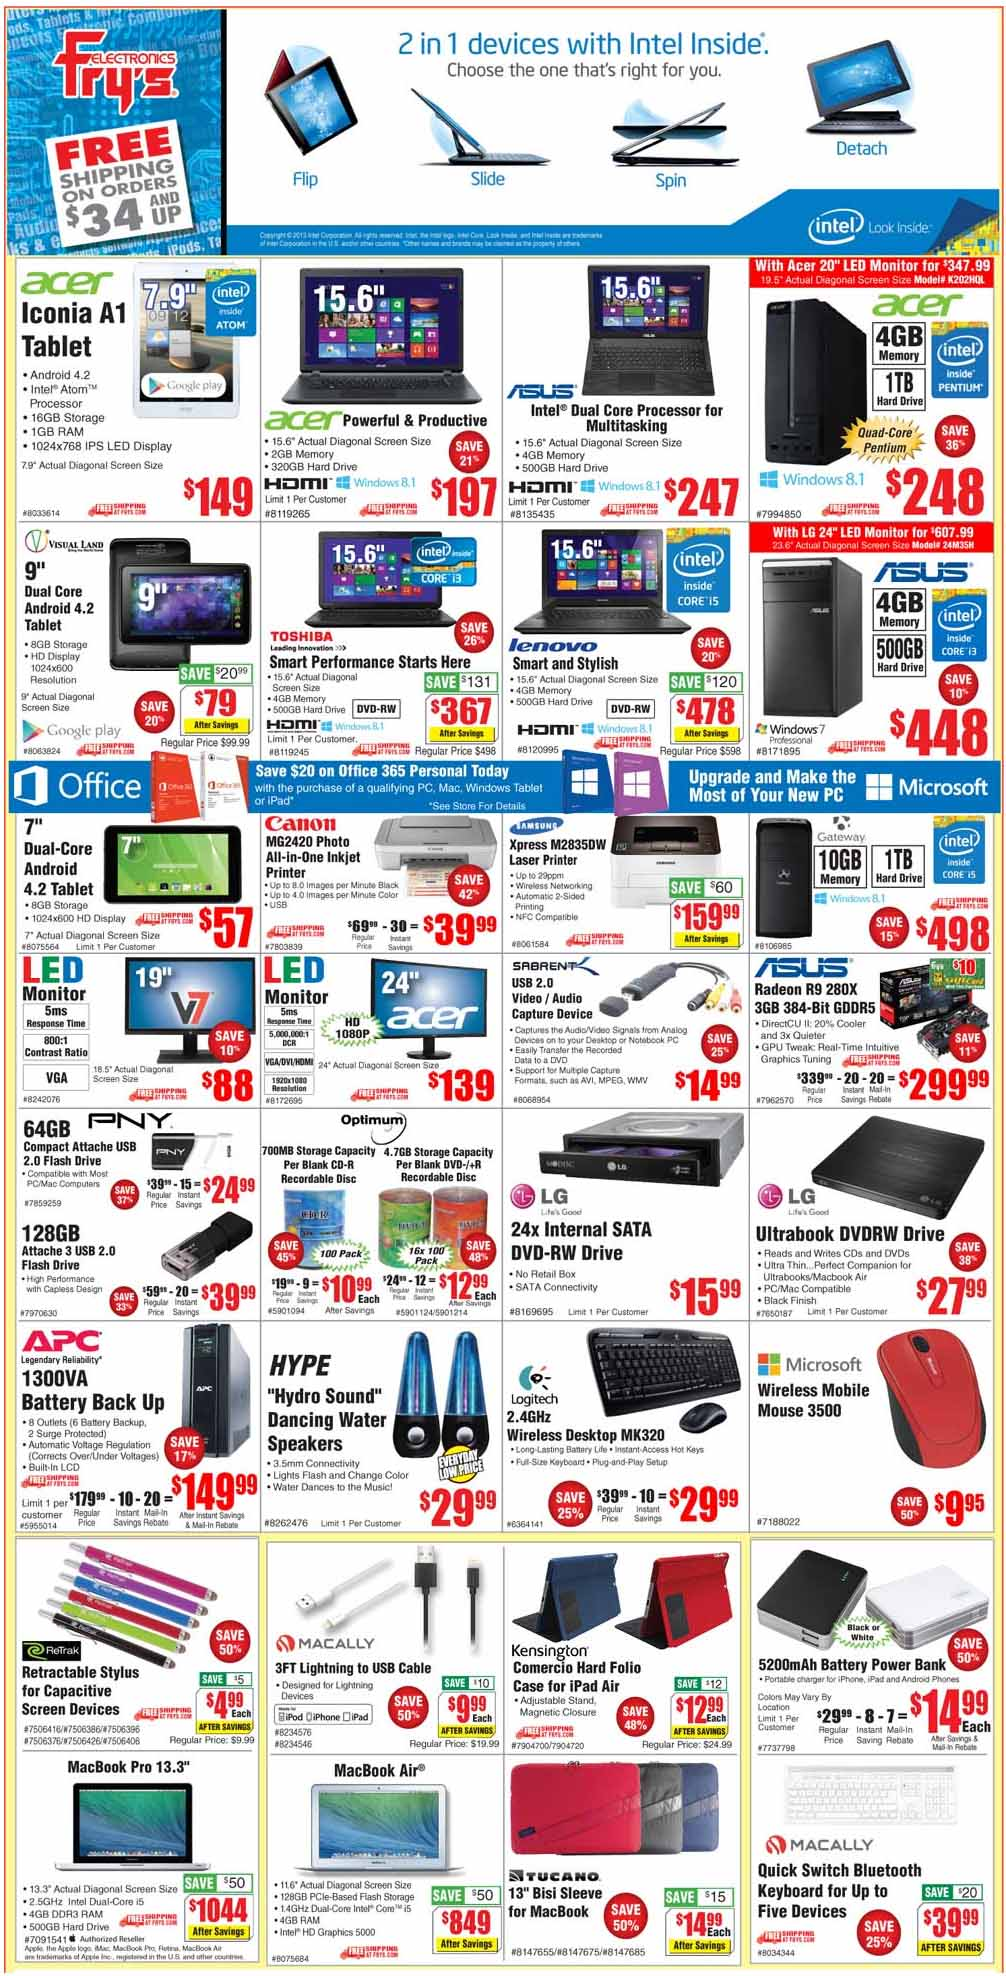 Frys Electronics Online Shopping Sales. Frys Electronics Online Shopping Sales Online Shop Policies The Exchange Shopping Mall Shopping Center Sheds vary considerably a complexity of their construction and also their size, from small open-sided tin-roofed structures to large wood-framed sheds with shingled roofs, windows, and electrical outlets.